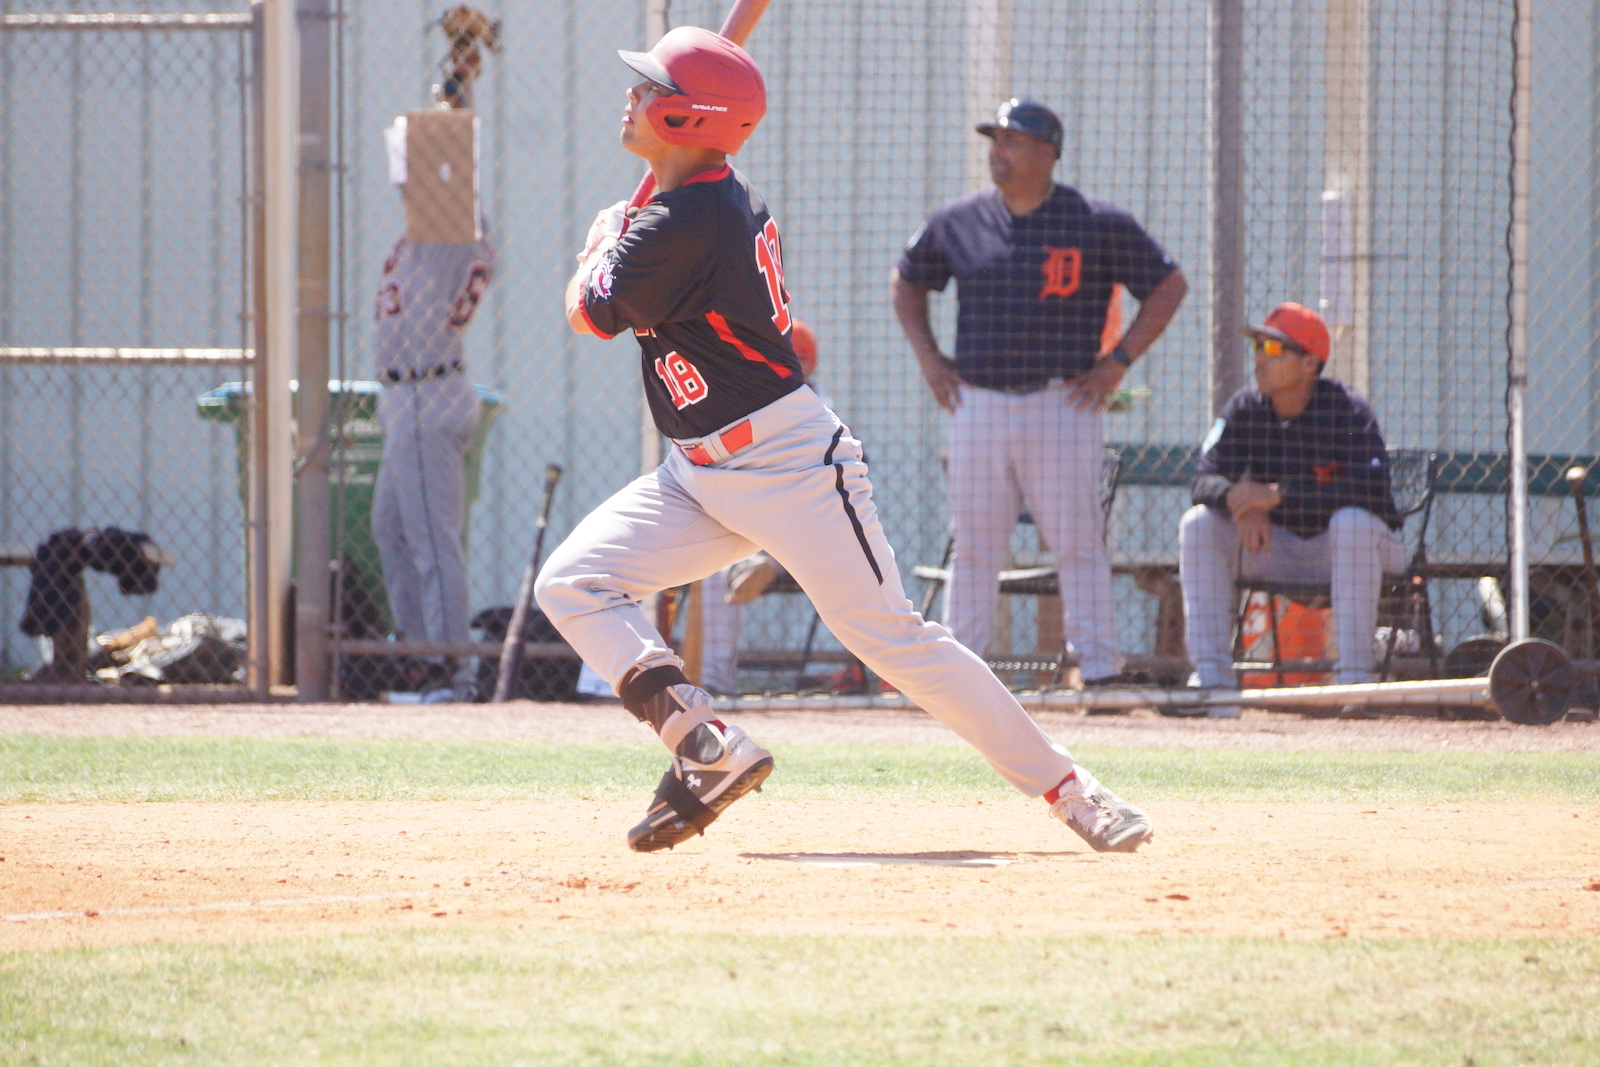 TJ Schofield-Sam (Brampton, Ont.) led the Junior National Team's offence on Friday with a 3-for-4 day at the plate, including a two-run home run. He also knocked in three runs. Photo: Eddie Michels